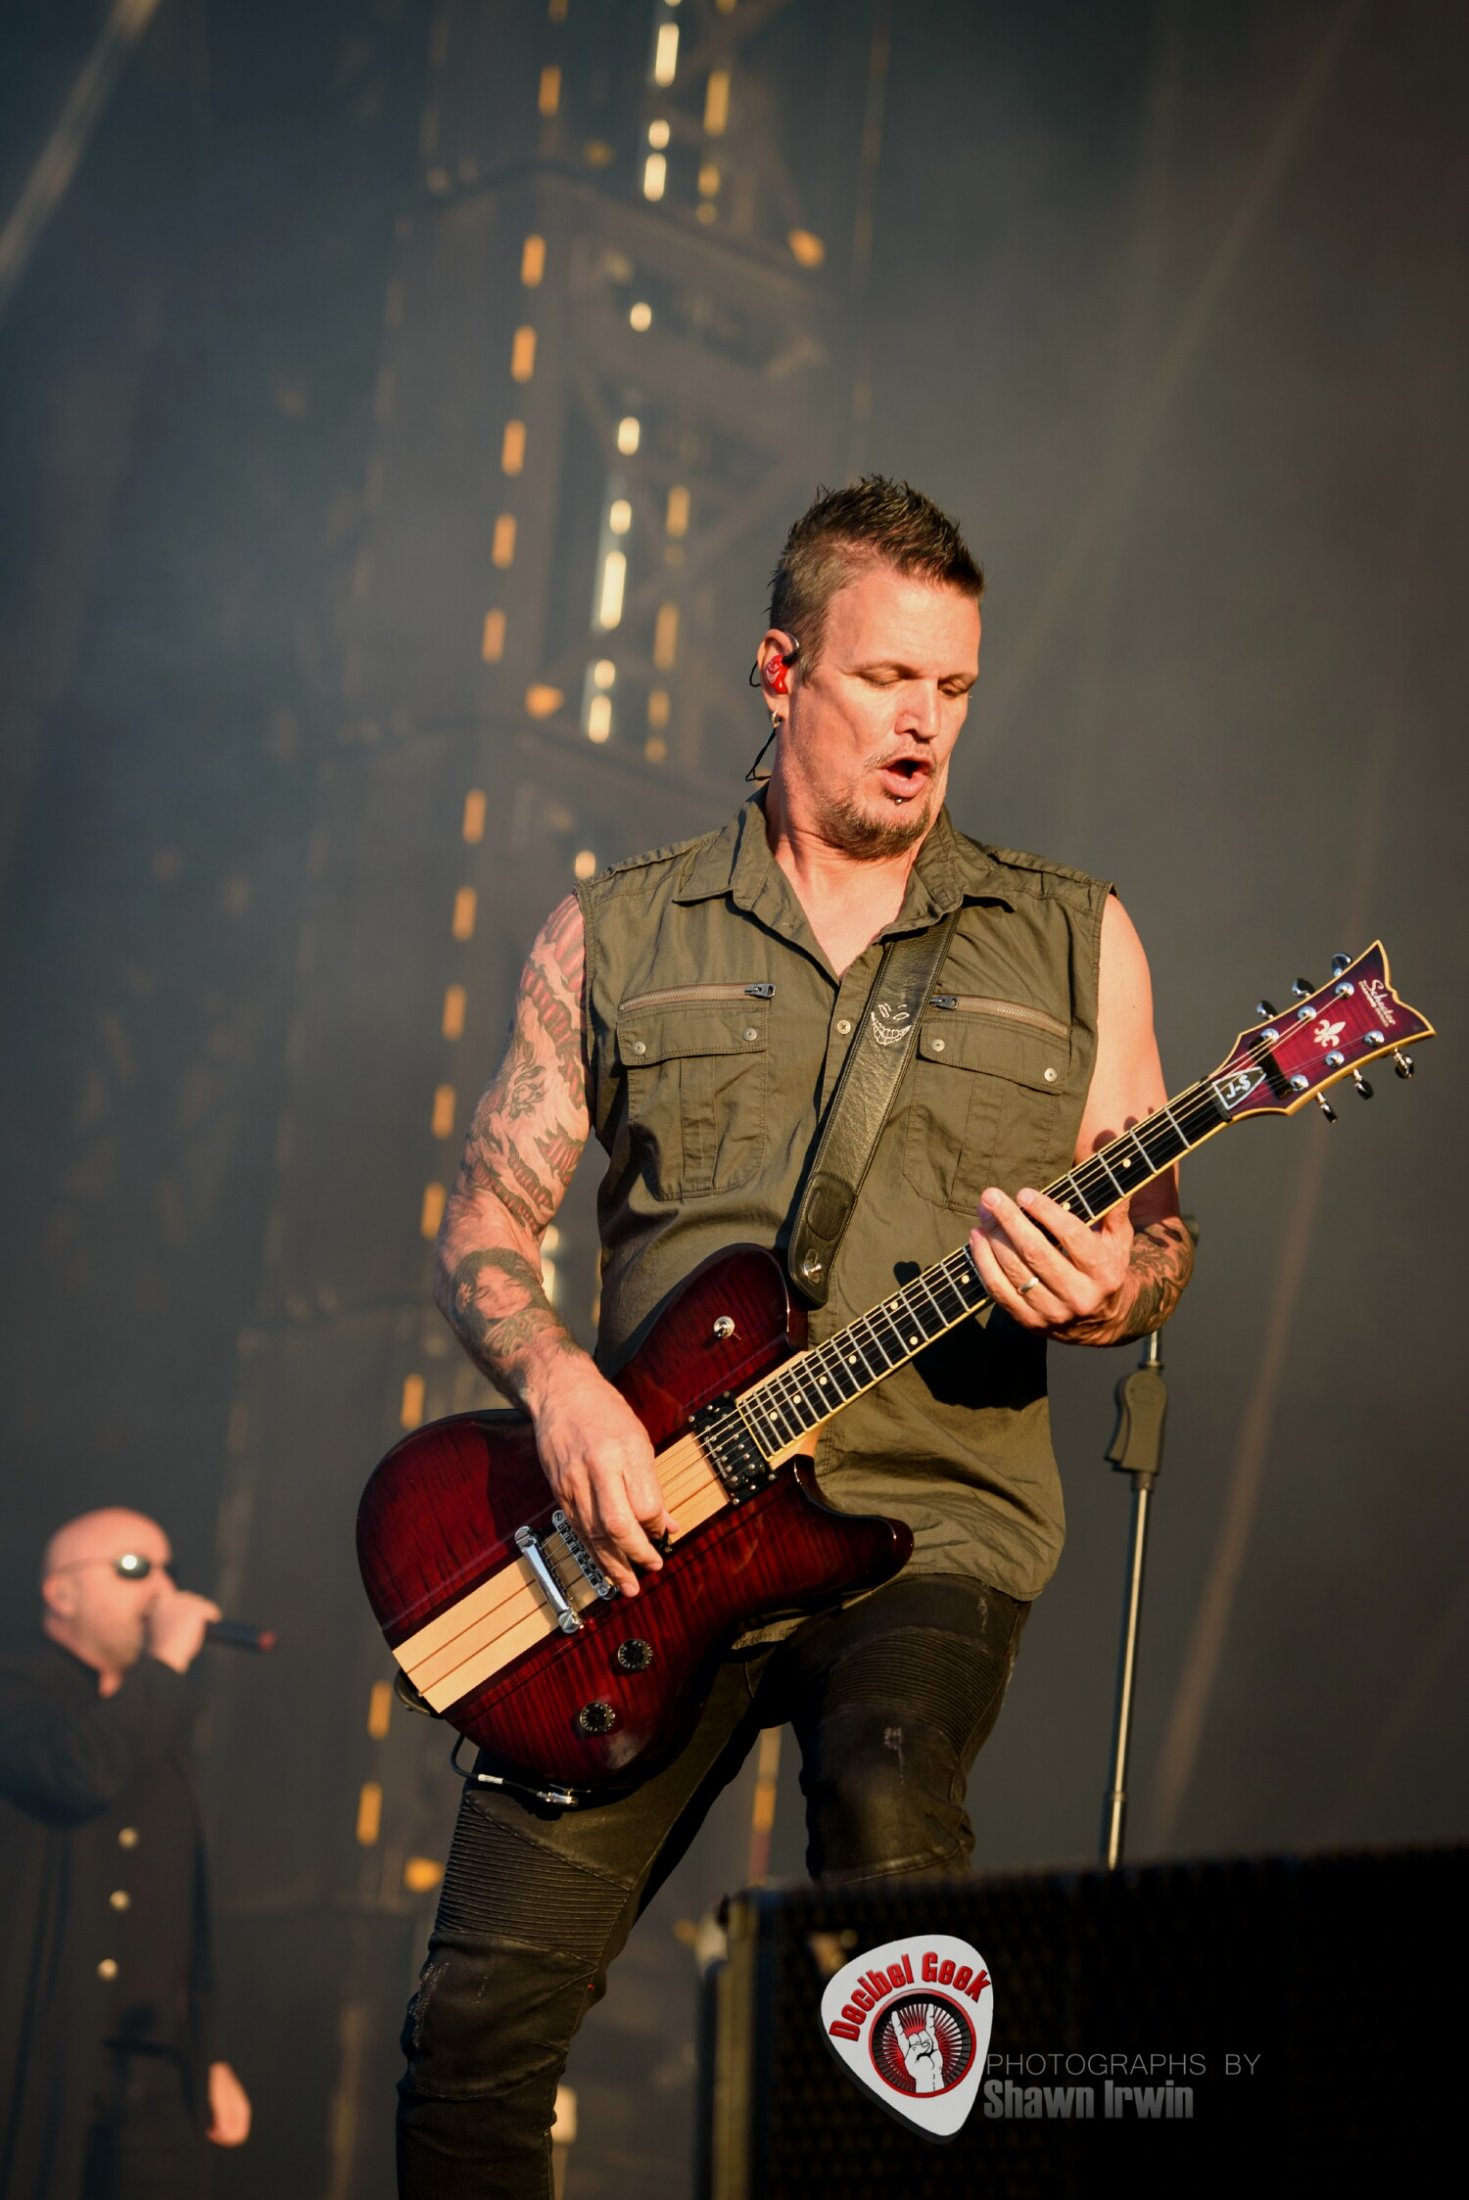 Disturbed #7-SRF 2019-Shawn Irwin